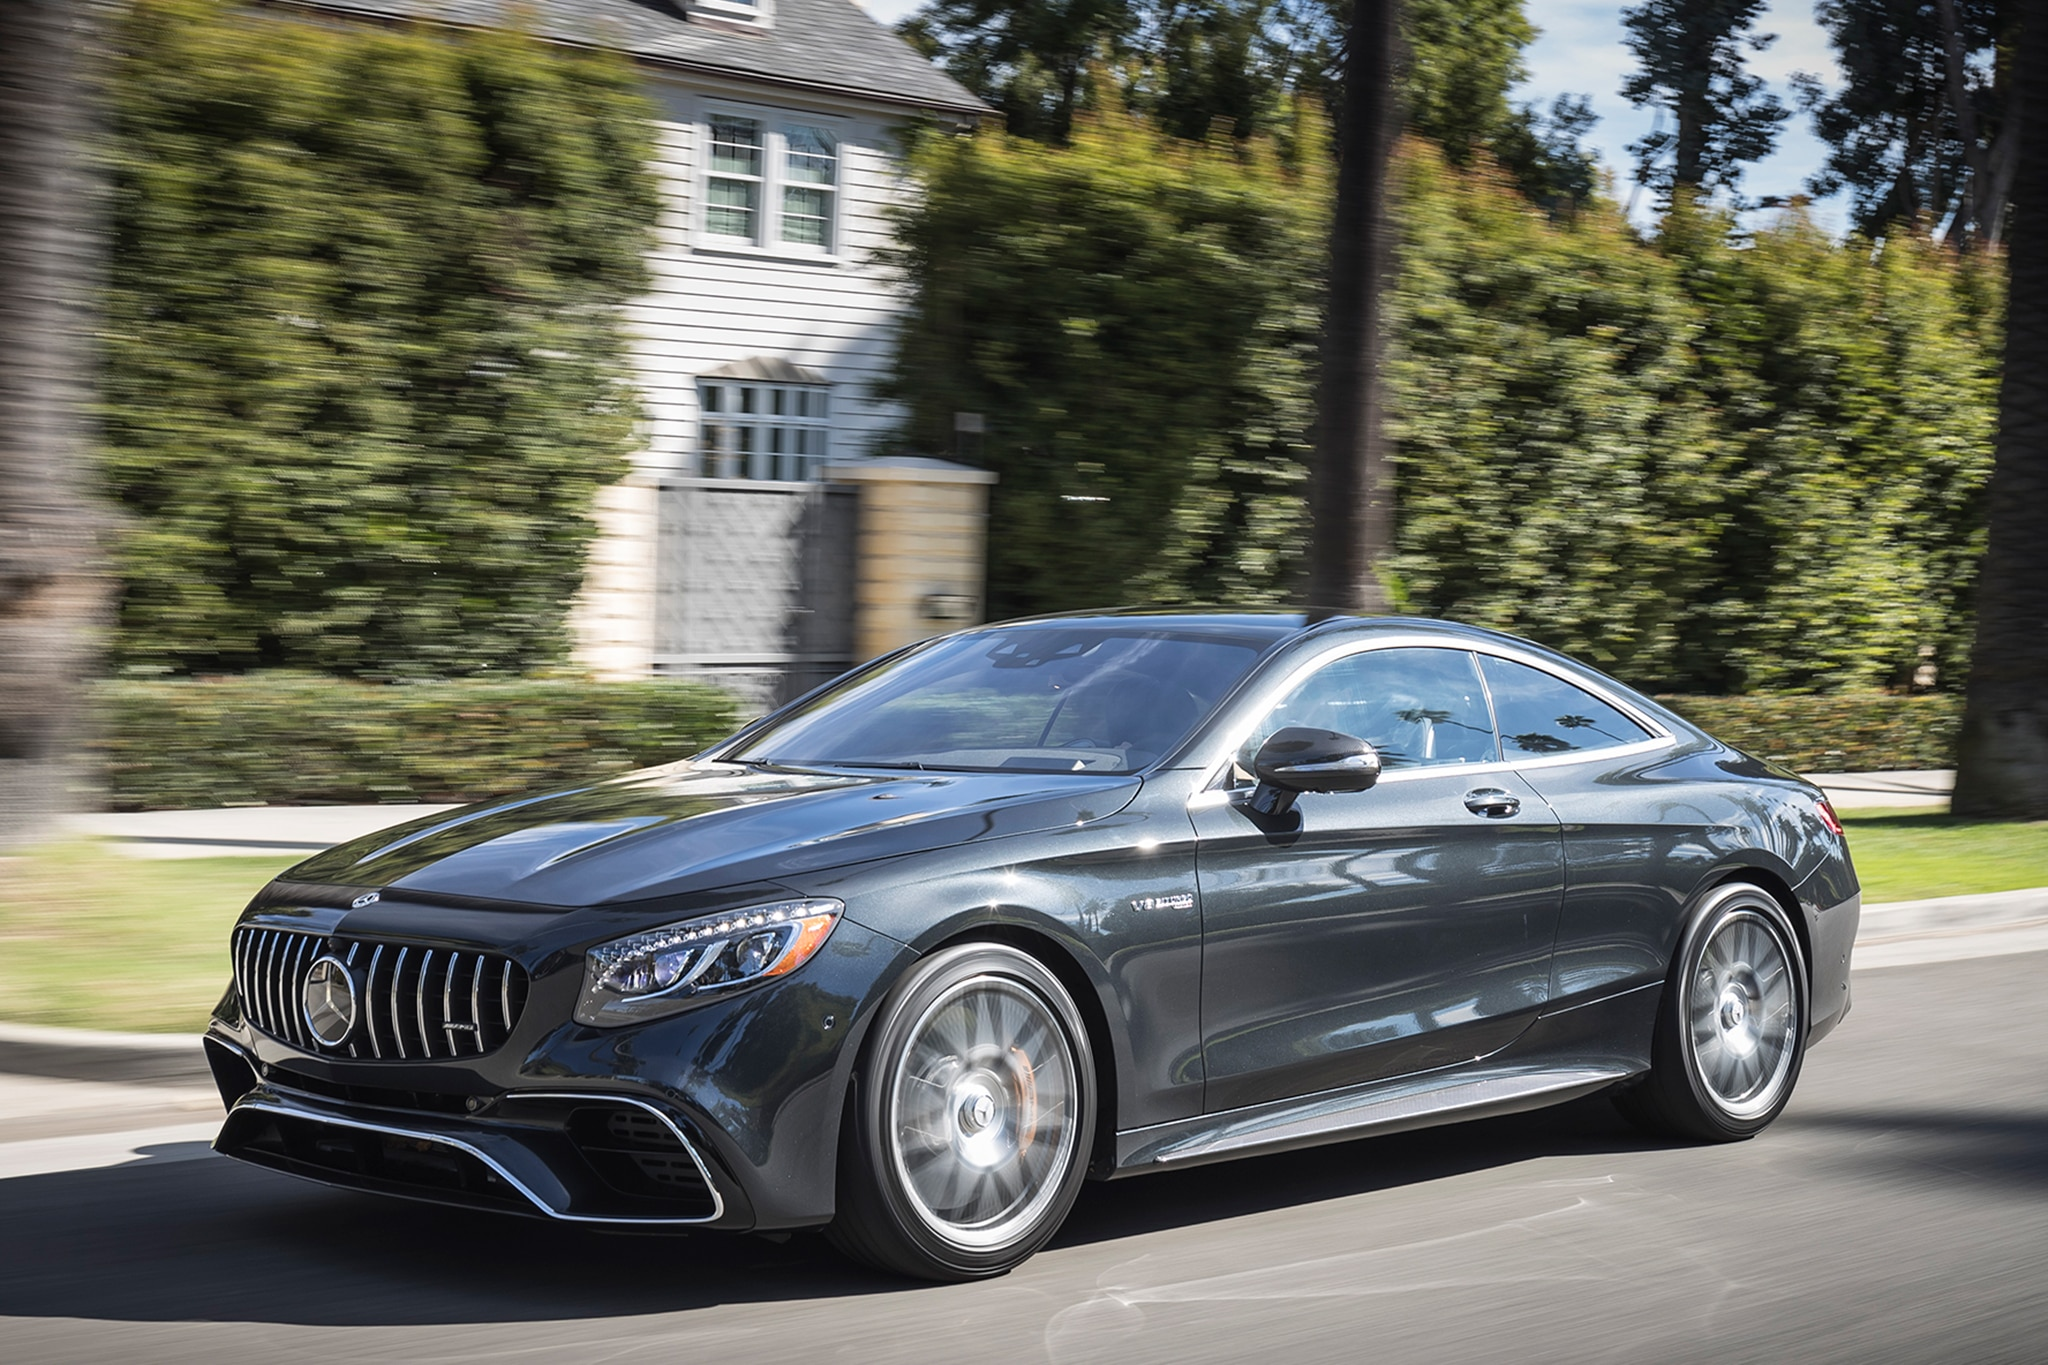 2018 Mercedes Amg S Class Coupe And Cabriolet First Drive Review